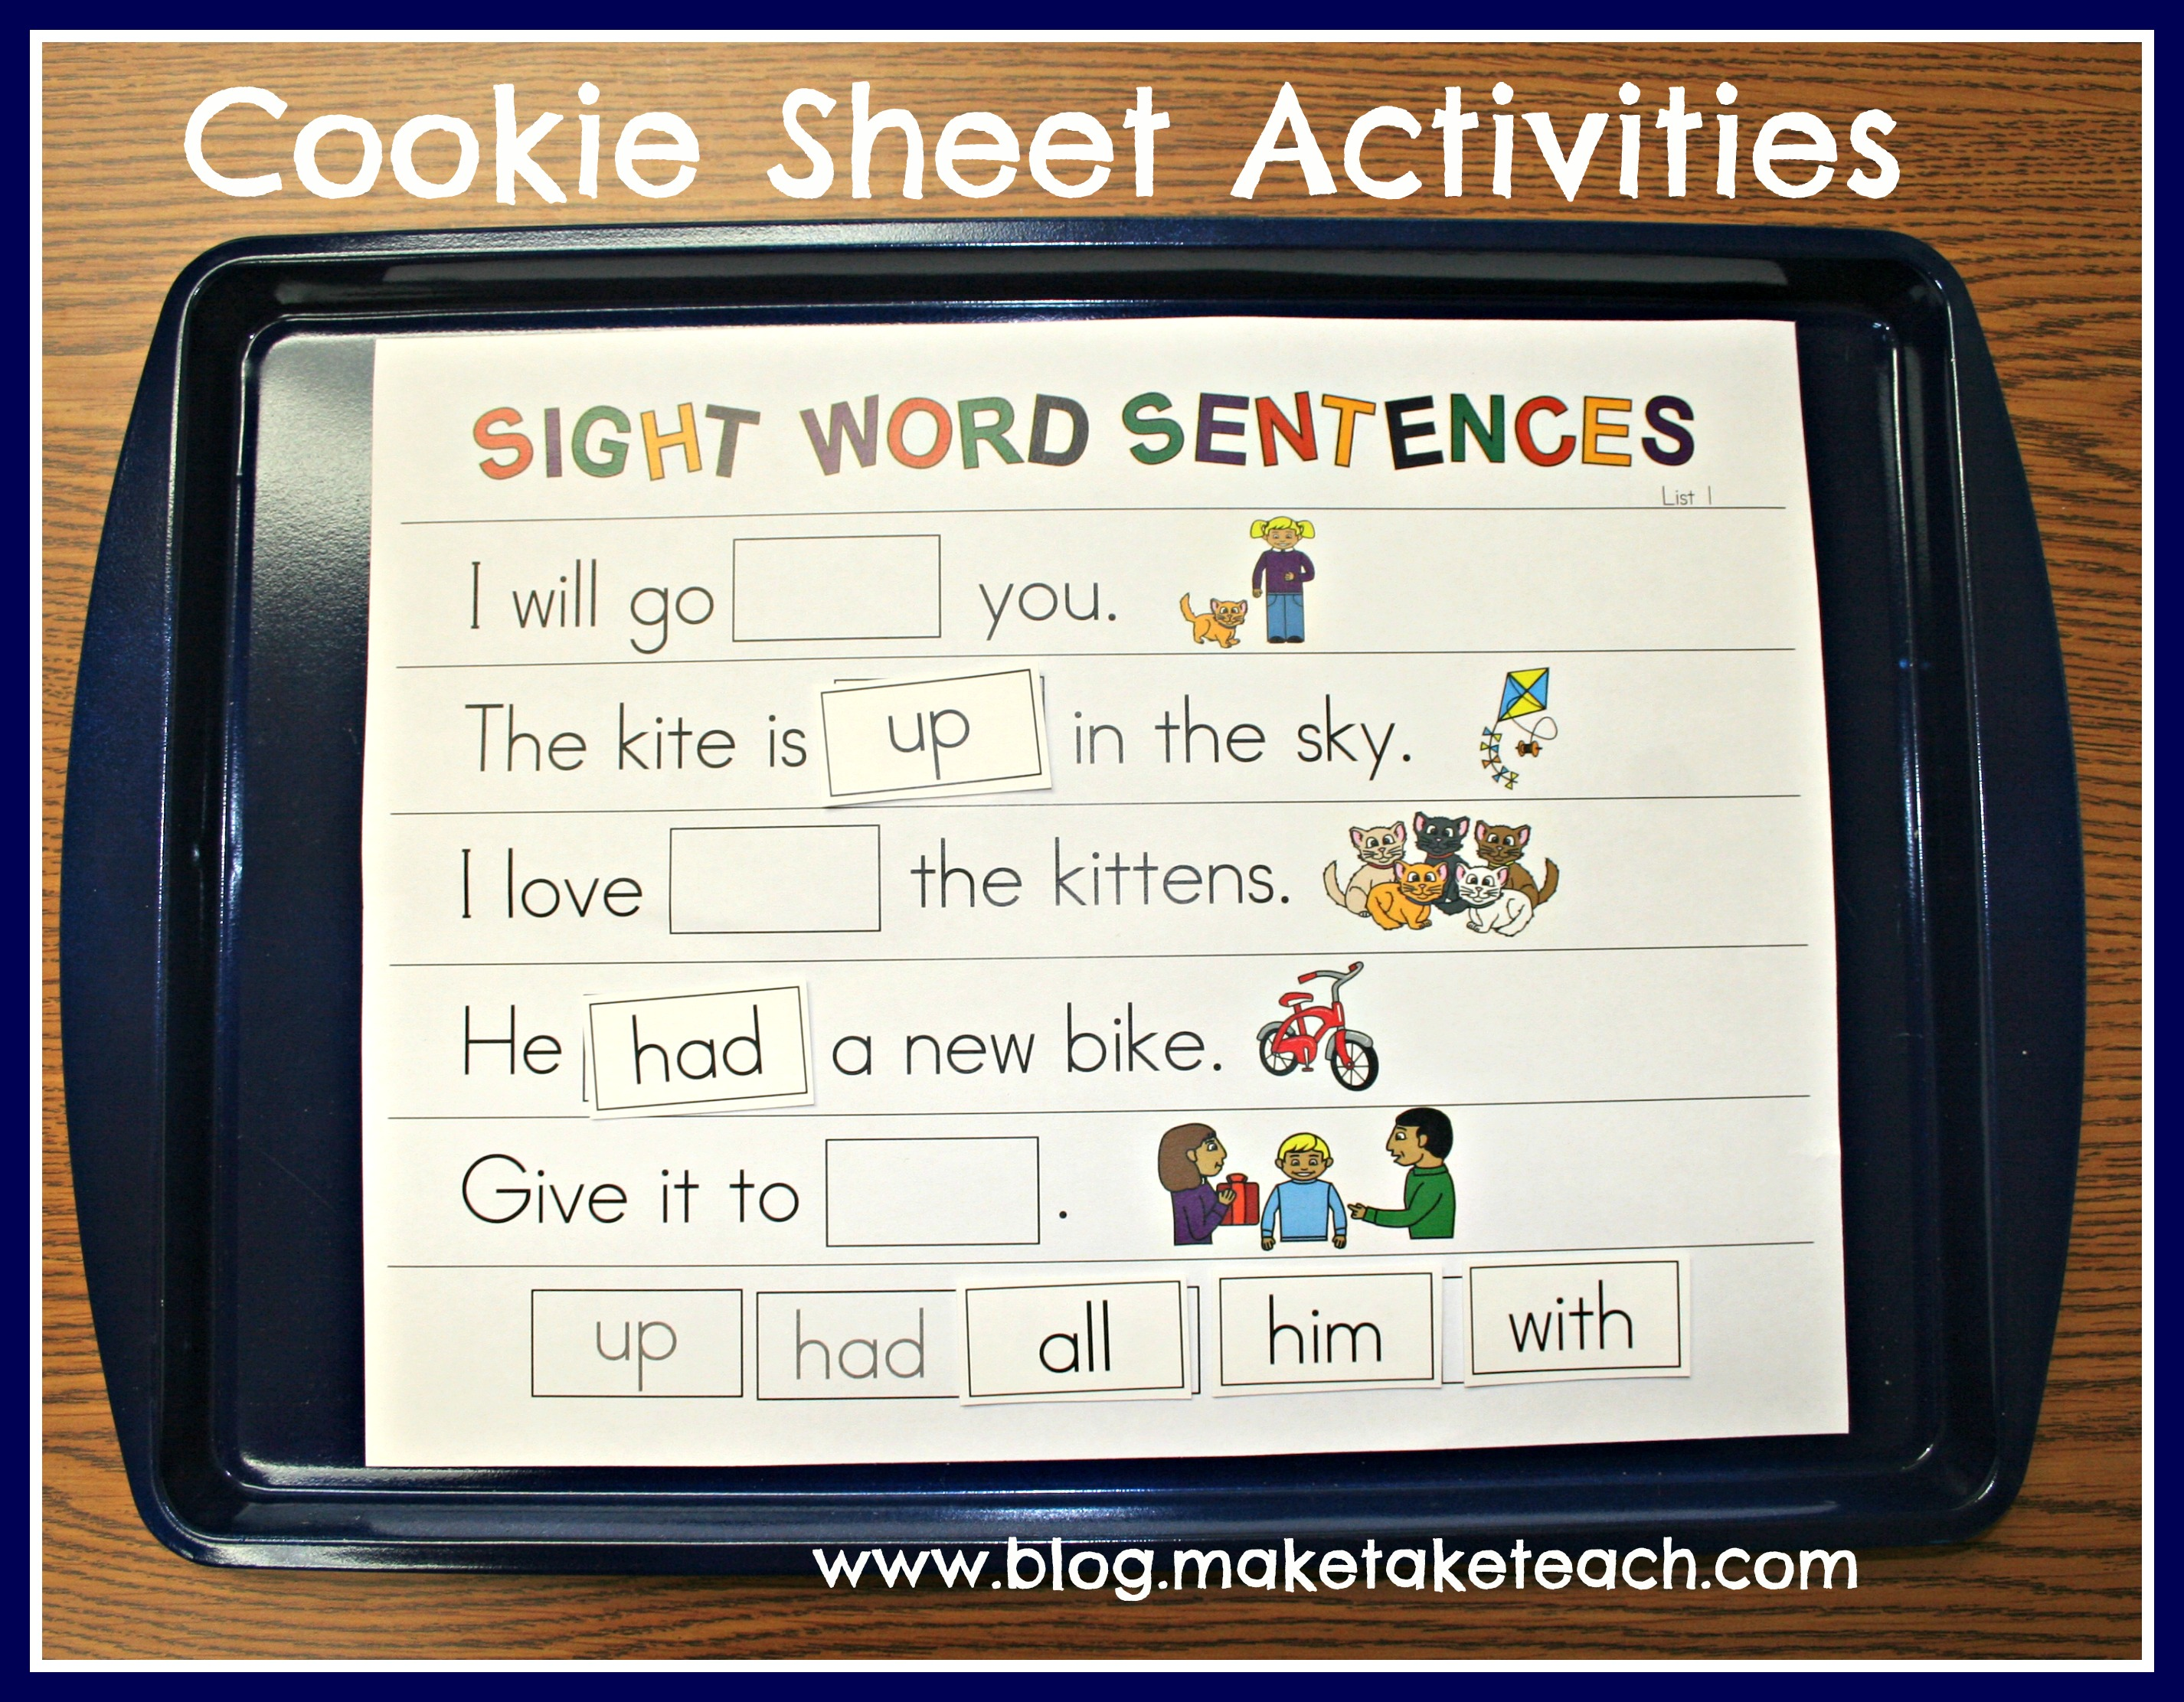 math worksheet : cookie sheet challenge volume 3 sight words  make take  teach : Kindergarten Sight Word Sentences Worksheets